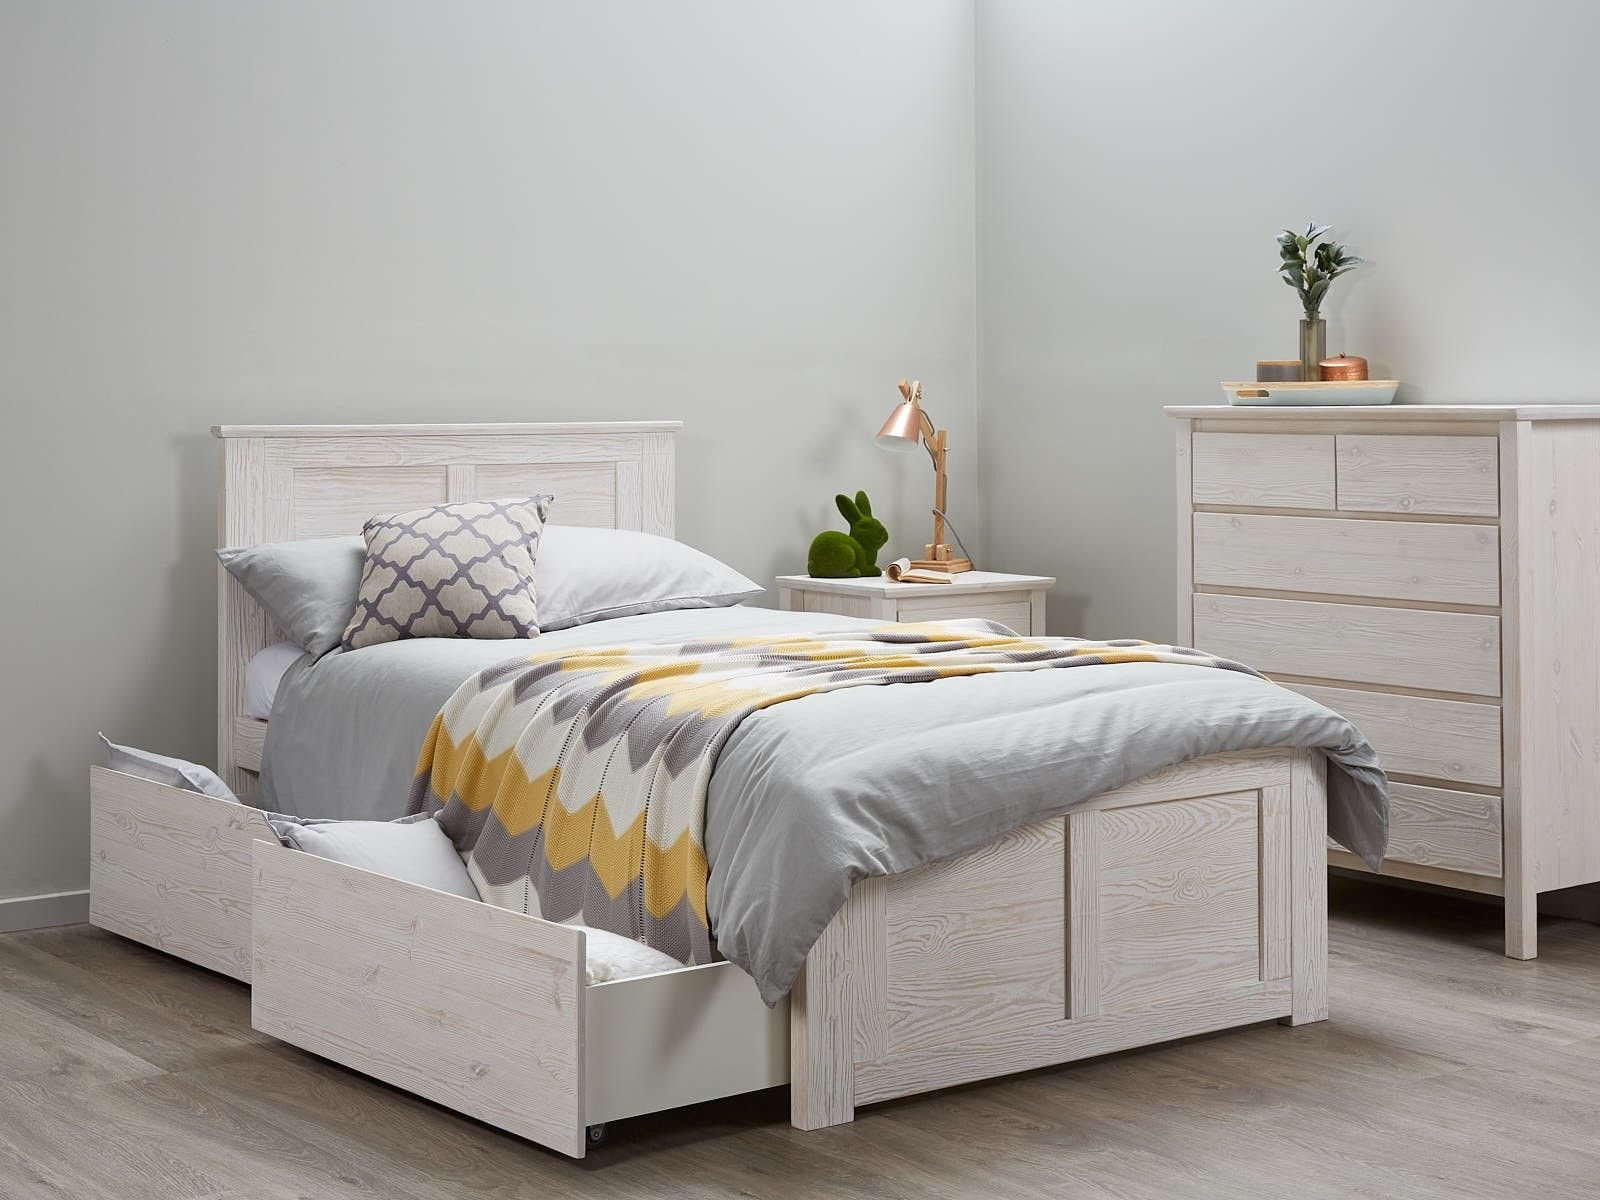 Fantastic King Single Bed Storage Kids Beds White B2c Furniture Bed Frame With Storage Single Beds With Storage Trundle Bed Kids